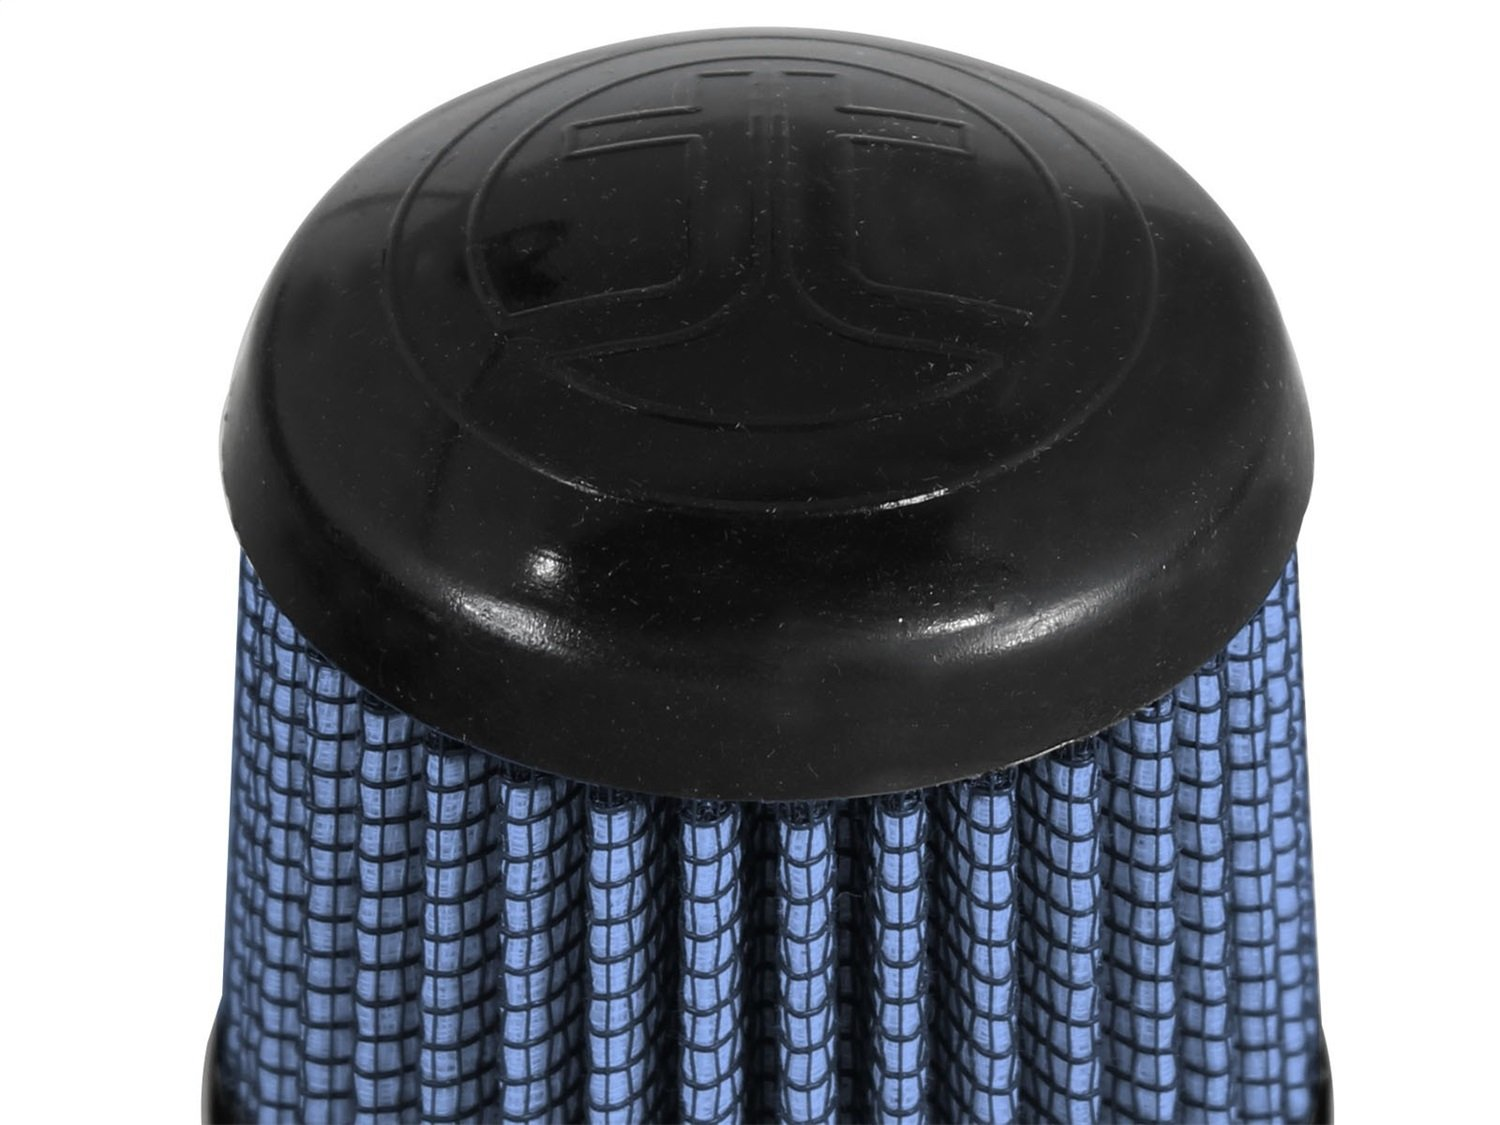 aFe Power TF-9022R Air Filter AFE Filters x 3-1//2H in P5R; 2F x 3B x 2-3//4T DOM